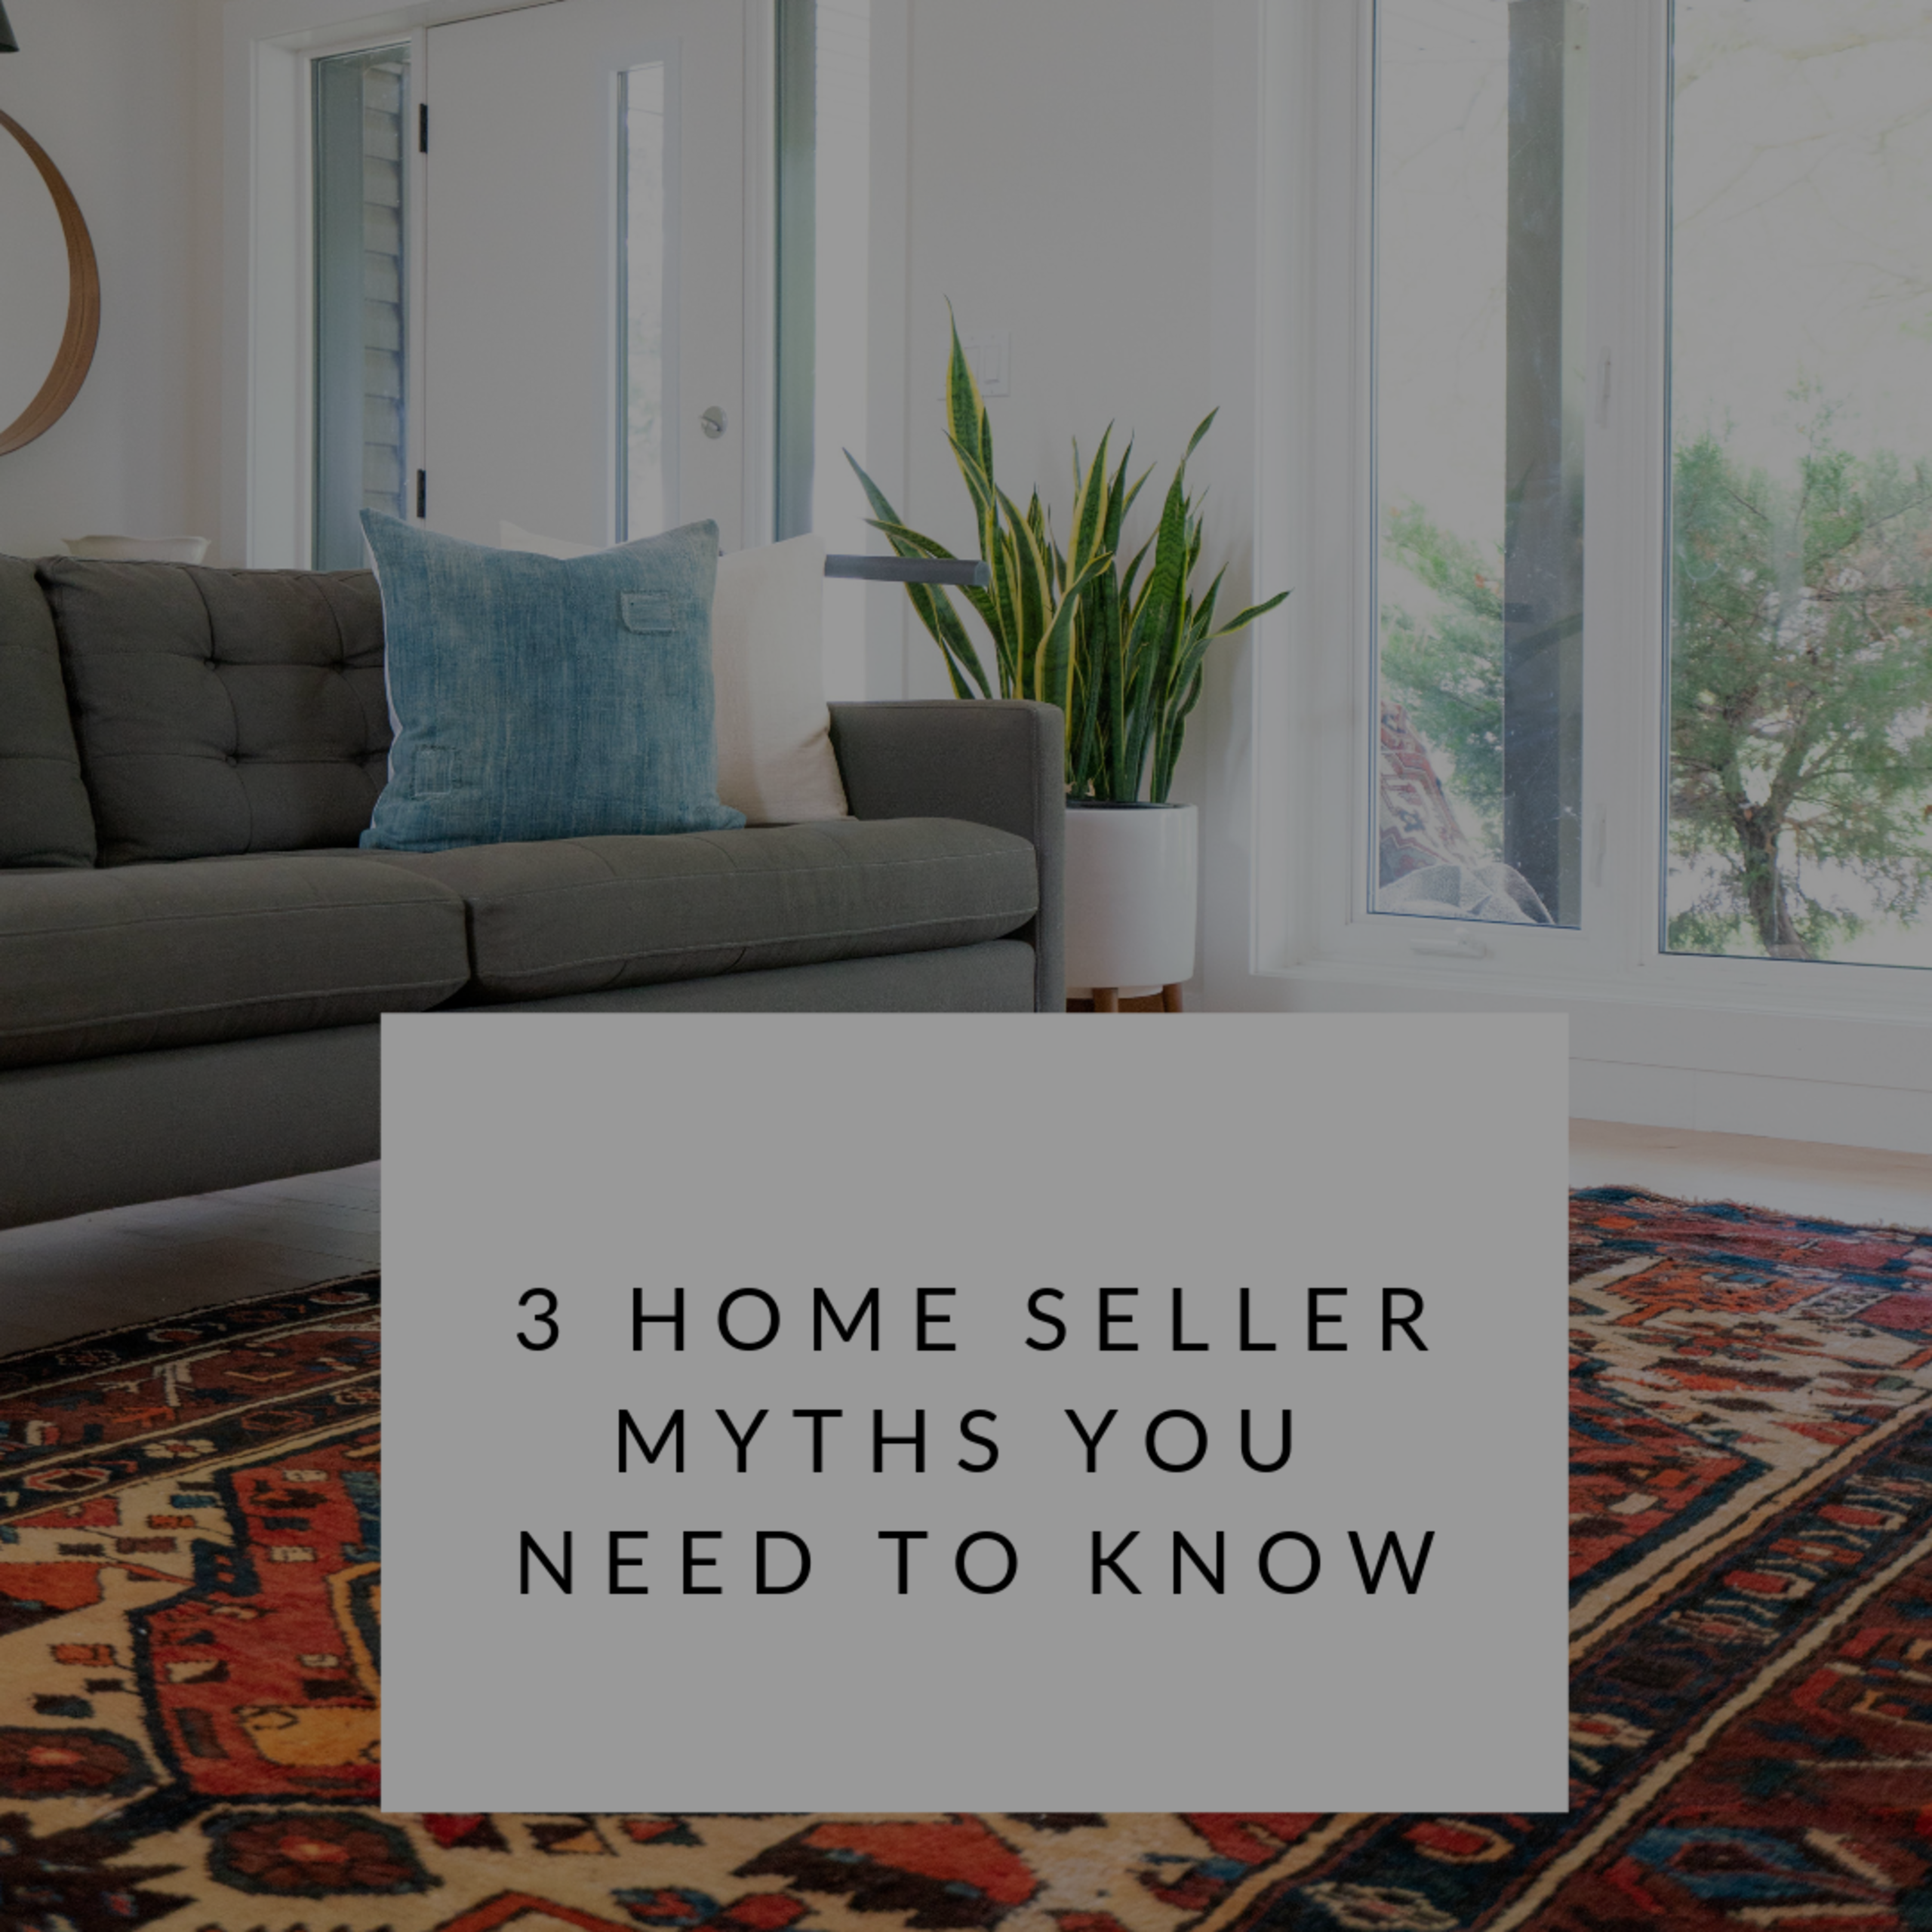 Three Home Seller Myths You Need to Know